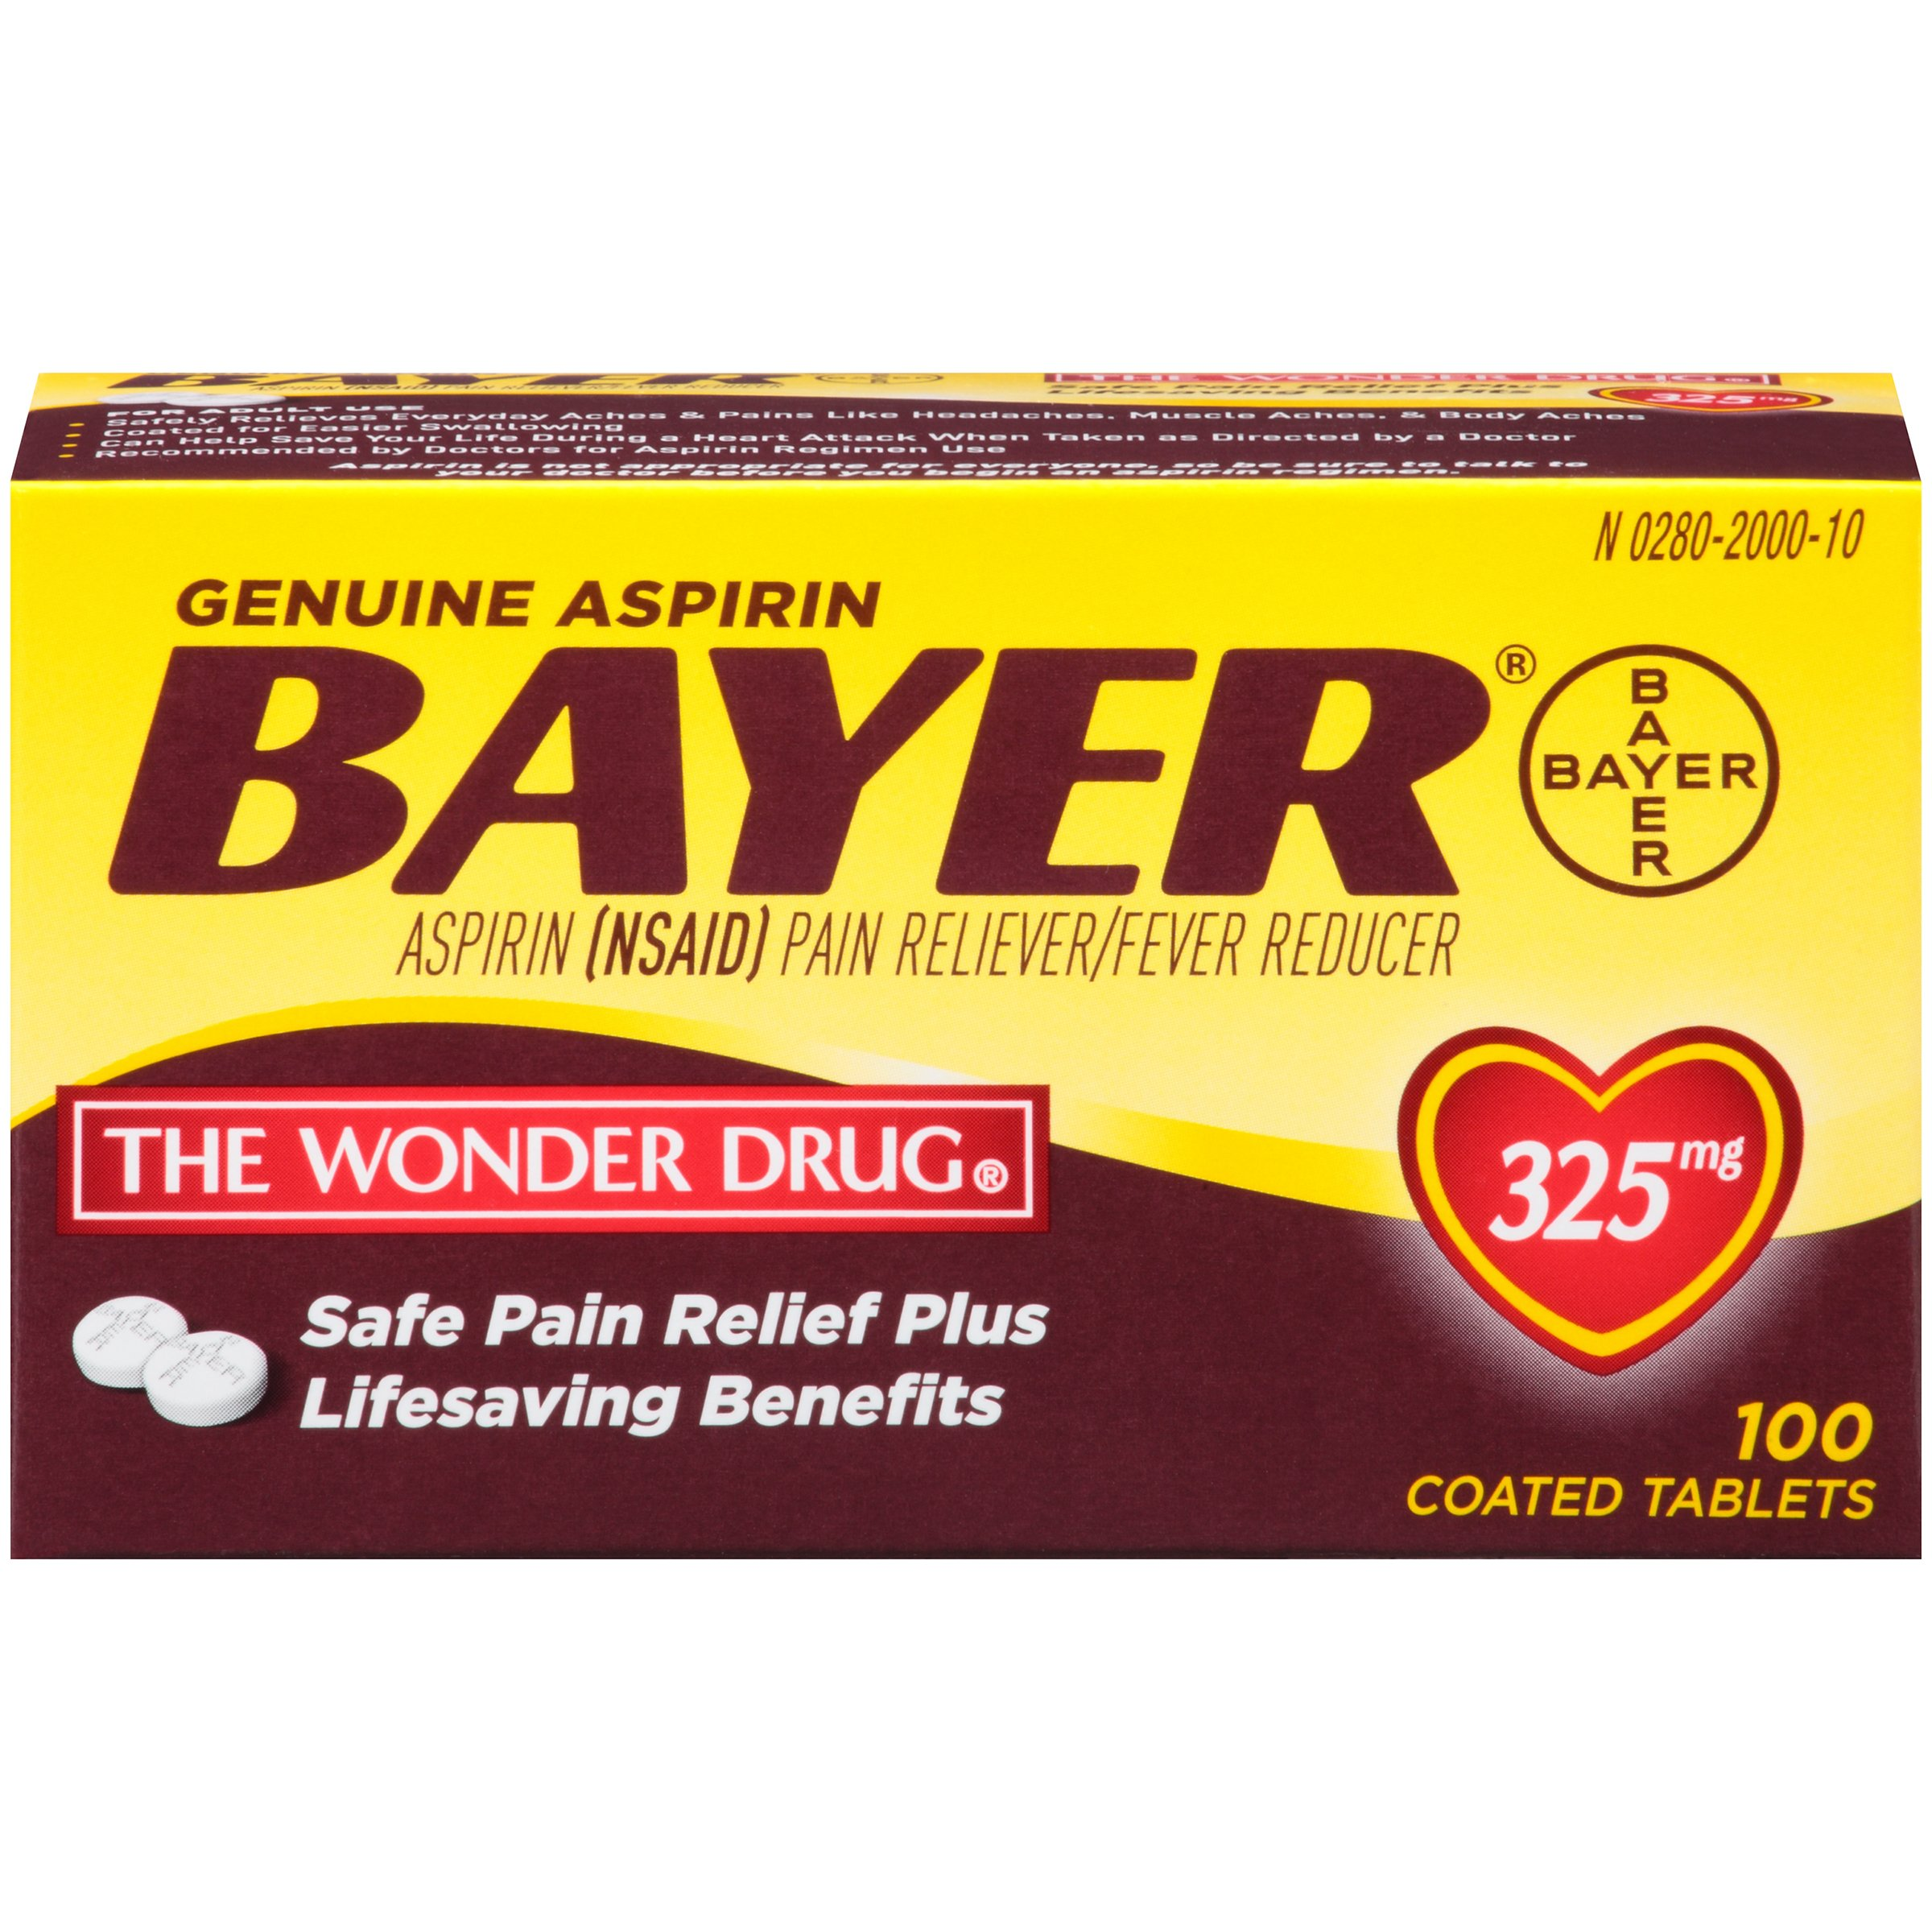 Genuine Bayer Aspirin 325mg Coated Tablets, Pain Reliever and Fever Reducer, 100 Count